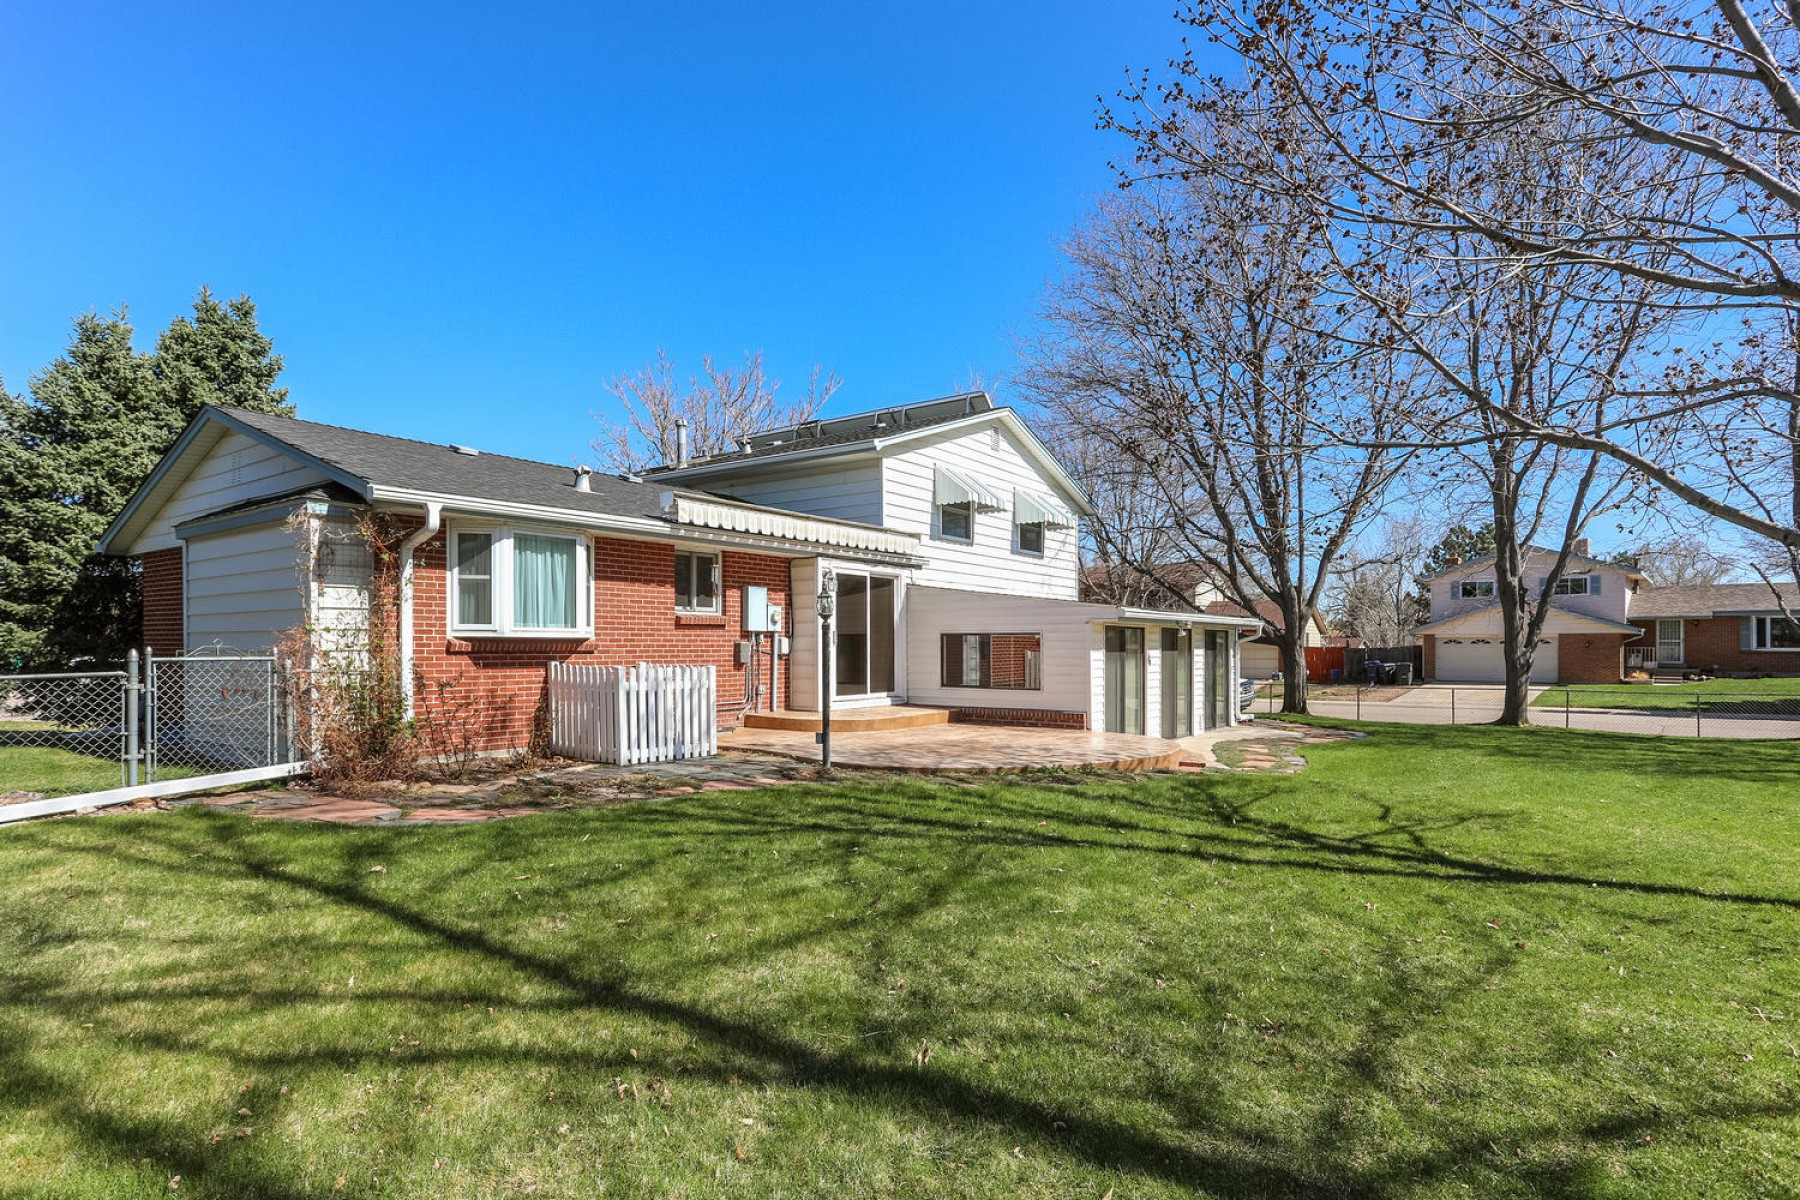 7719 W. Caley Drive, Littleton, CO 80123